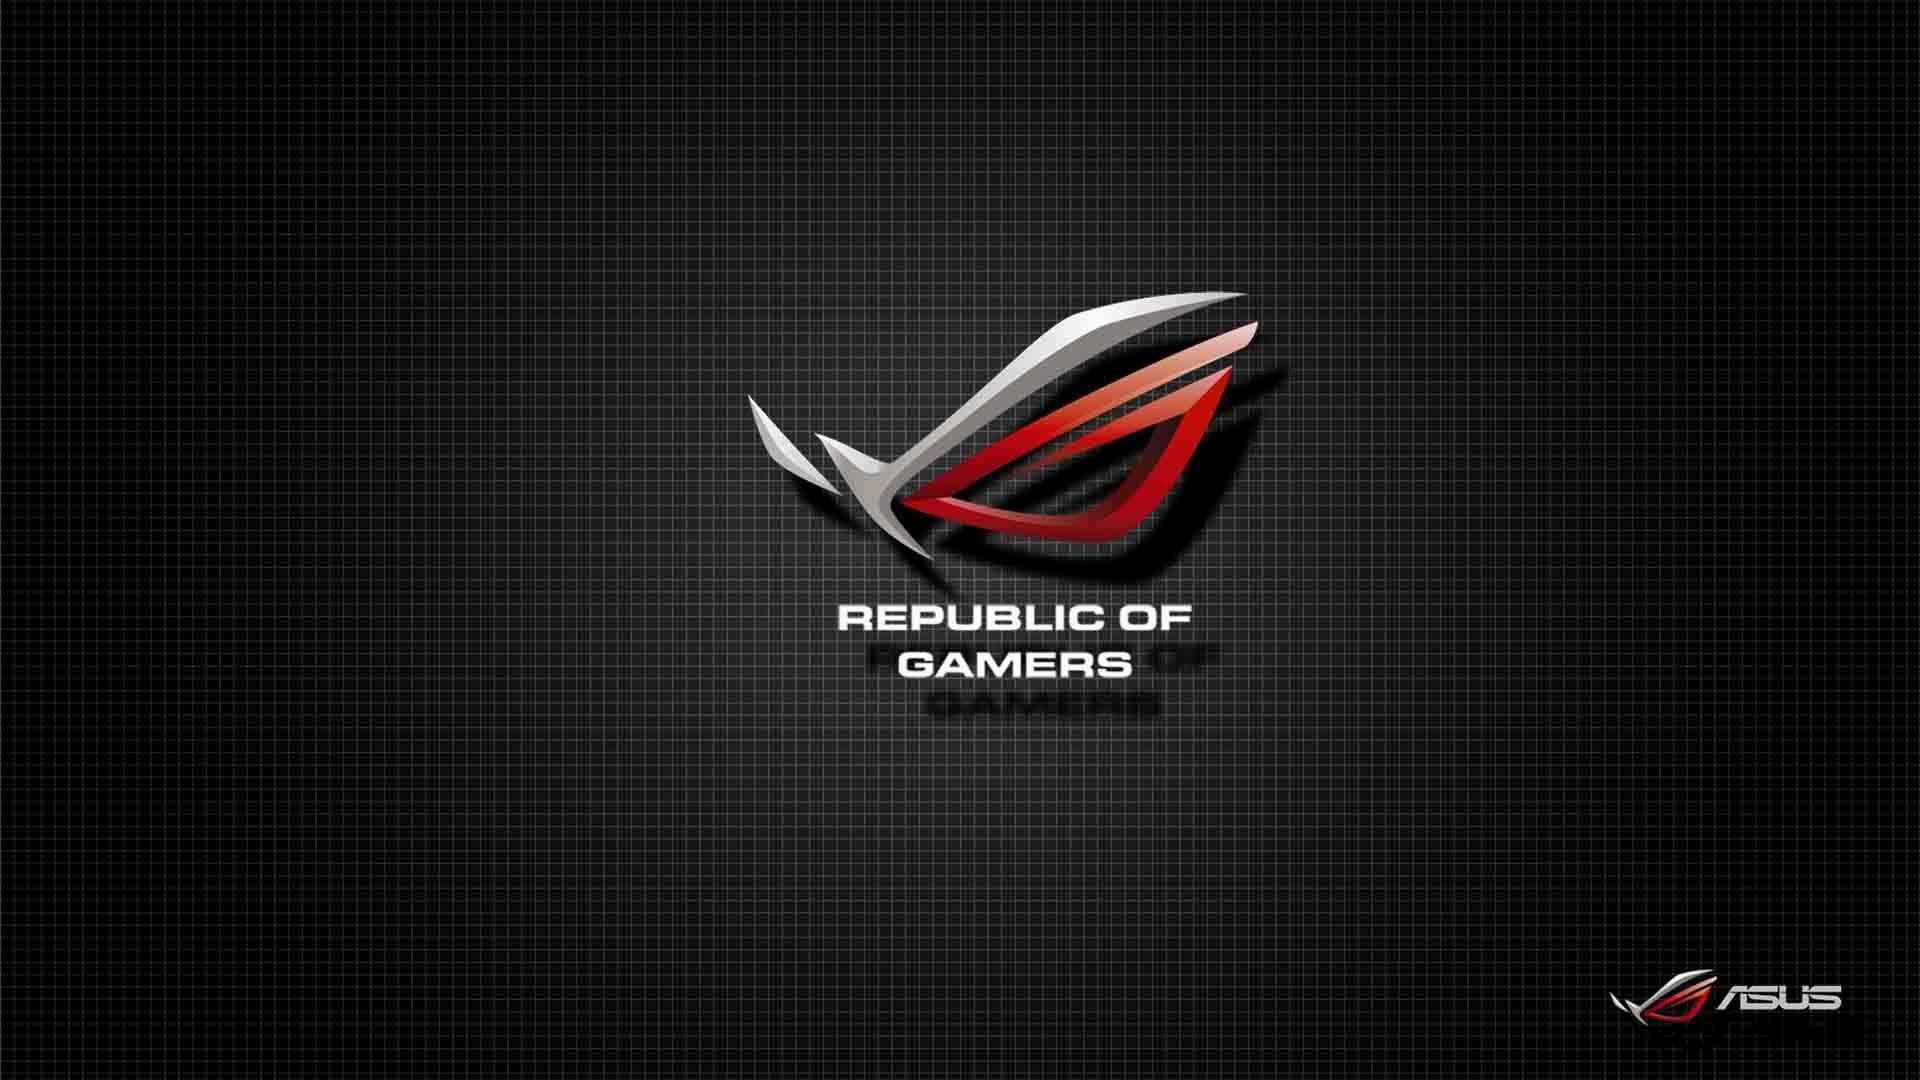 74+ asus rog wallpapers on wallpaperplay